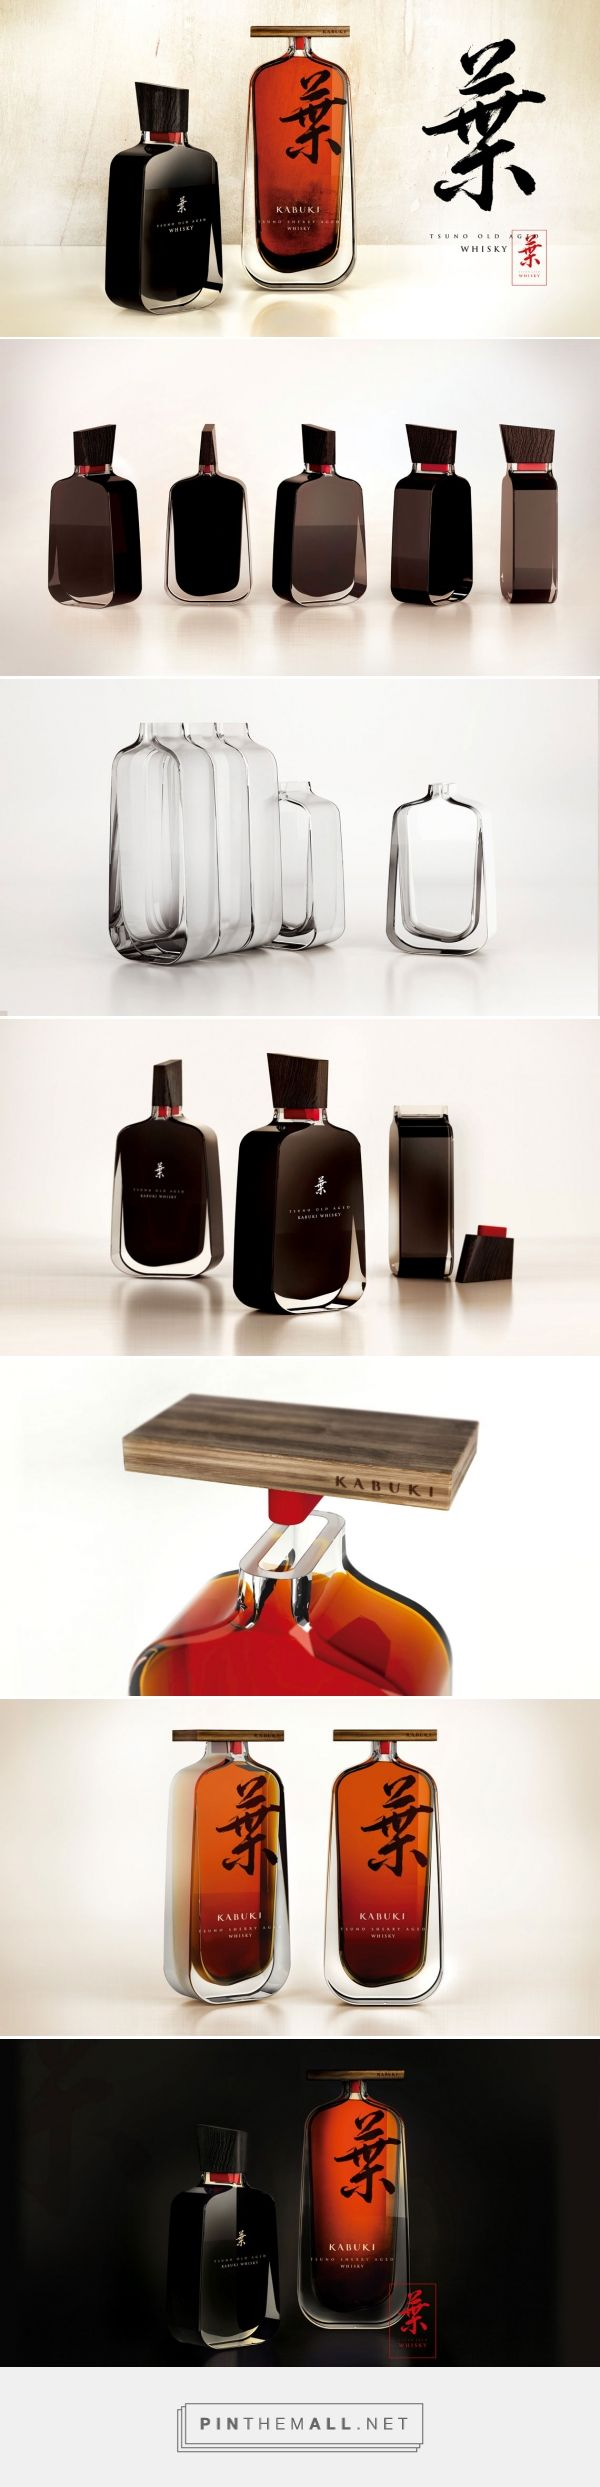 Kabuki luxury spirits packaging design concept by SeriesNemo (Spain) - http://www.packagingoftheworld.com/2016/09/kabuki-concept.html